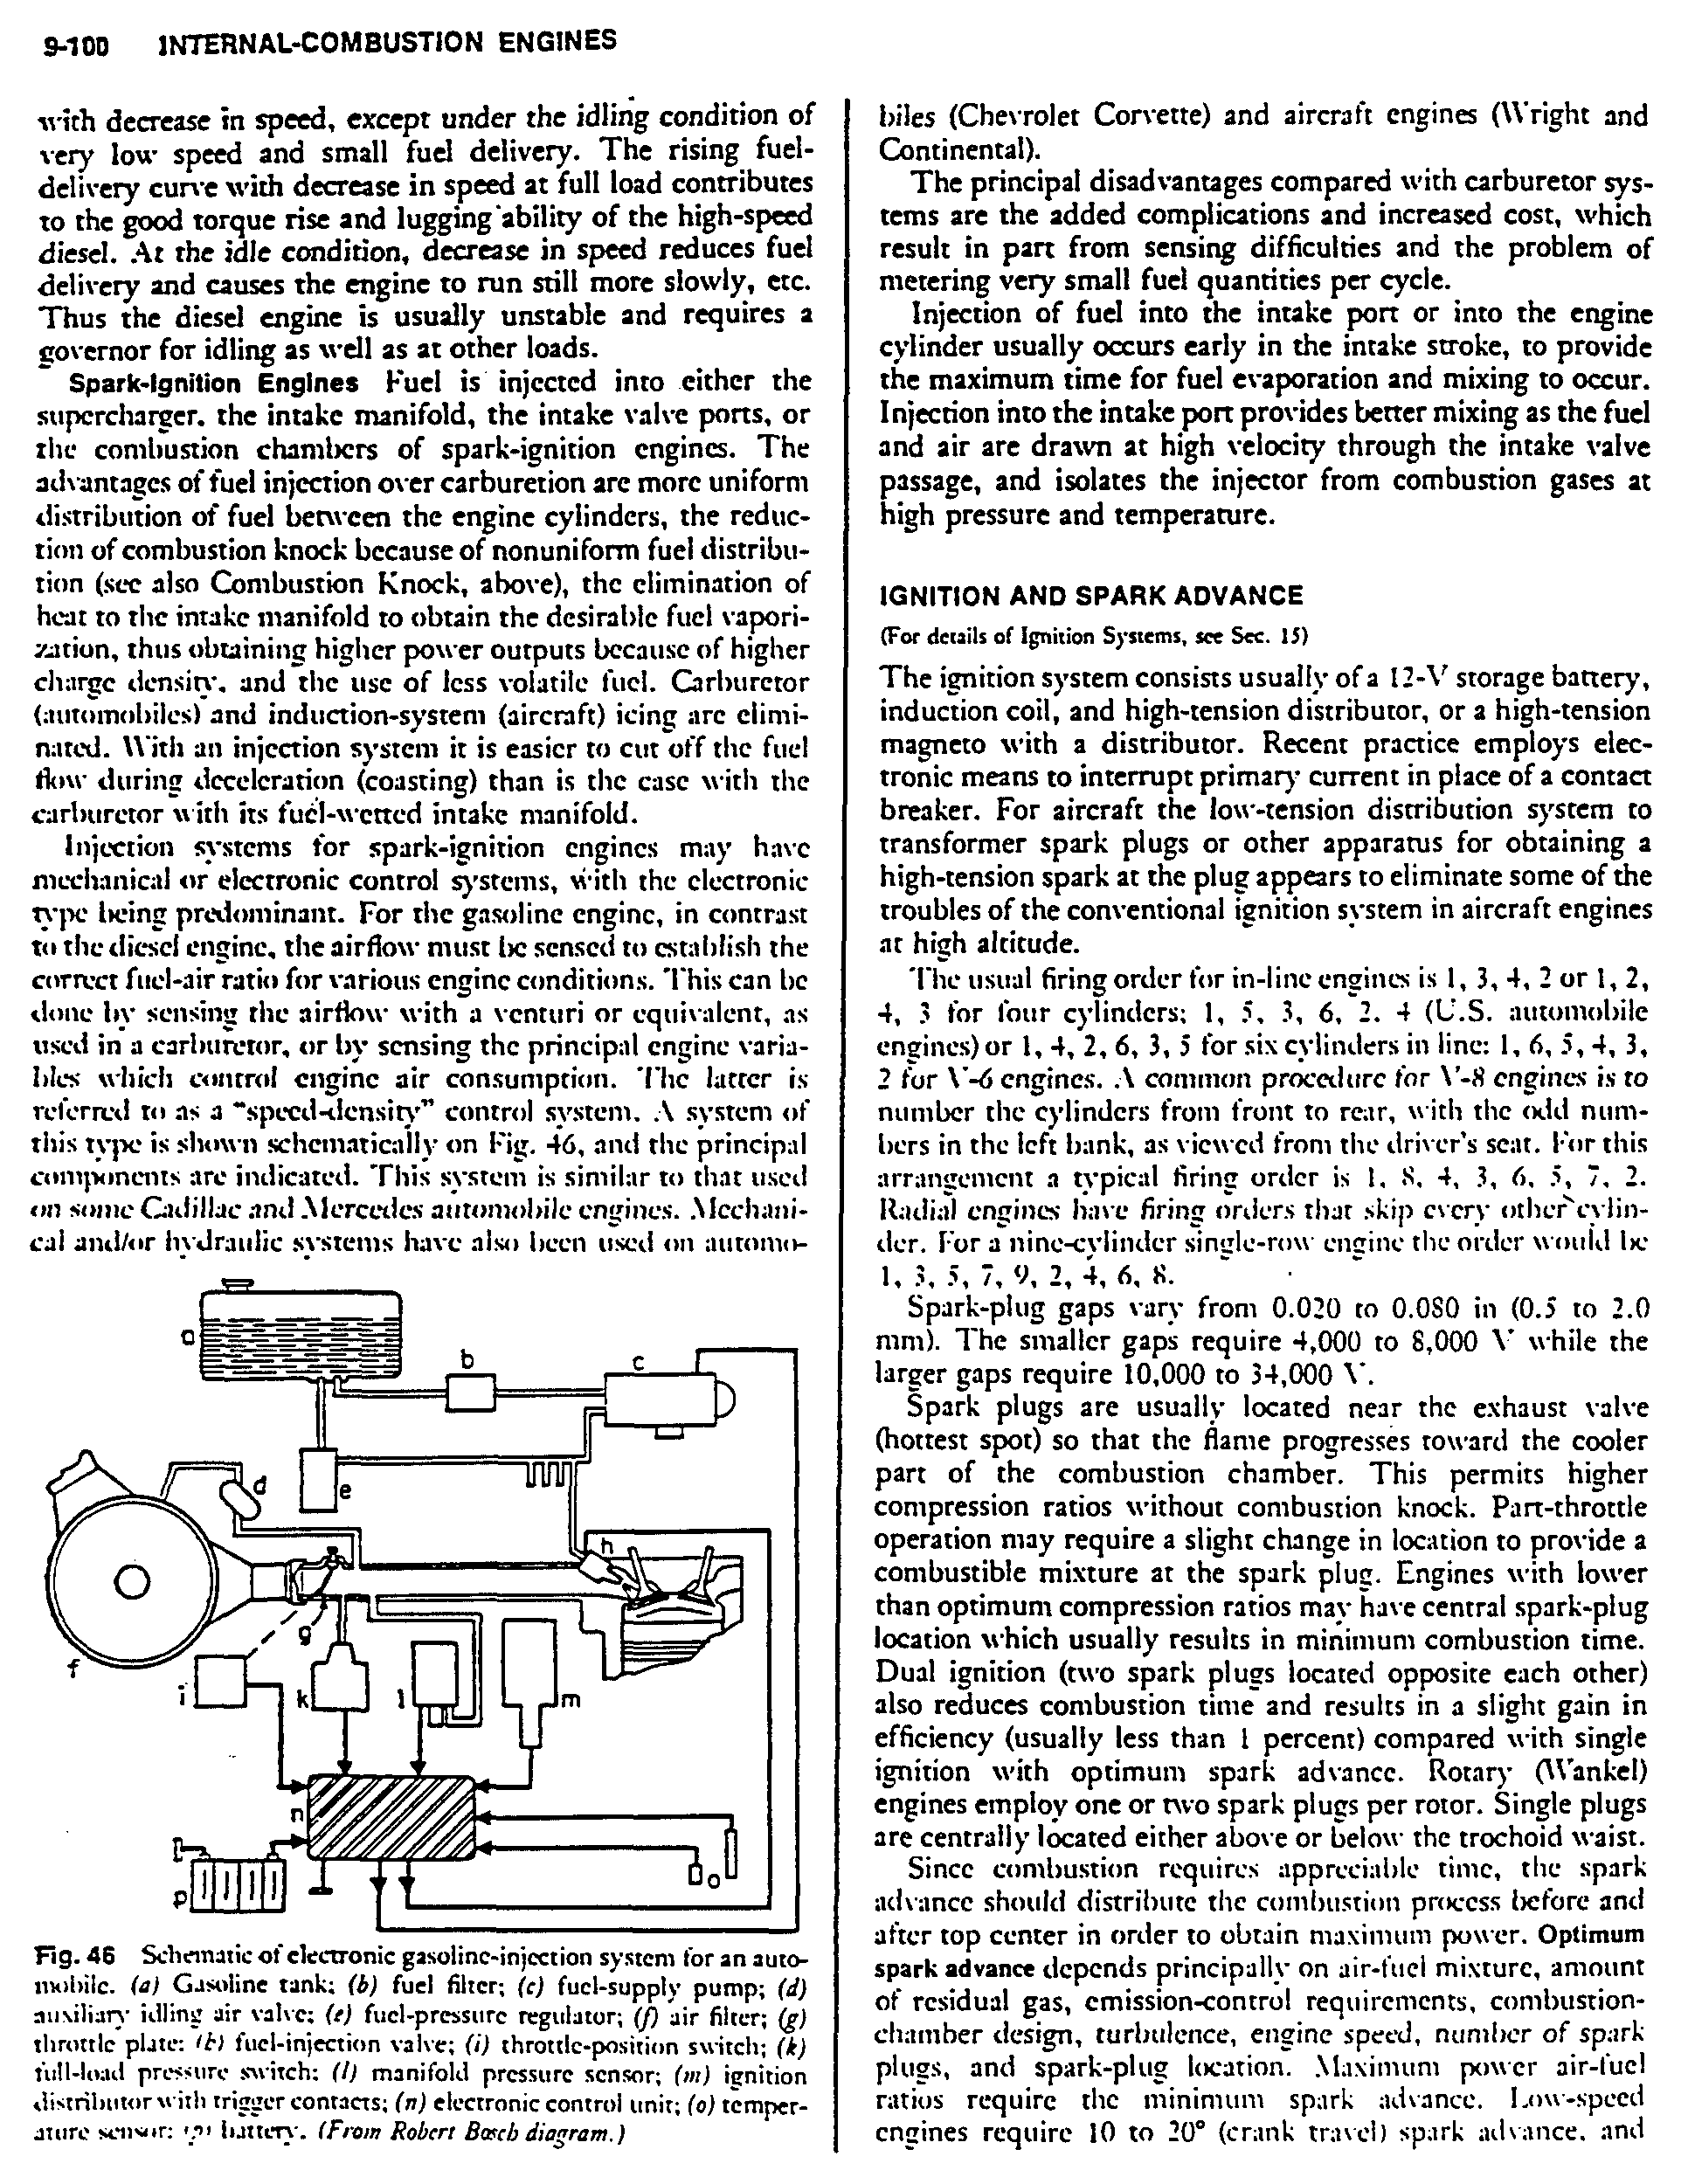 Wo1994023191a1 Two Cycle Engine With Reduced Hydrocarbon Emissions Note The Above Fuel Injector Wiring Diagram Applies Only To 1996 Figure Imgf000034 0001